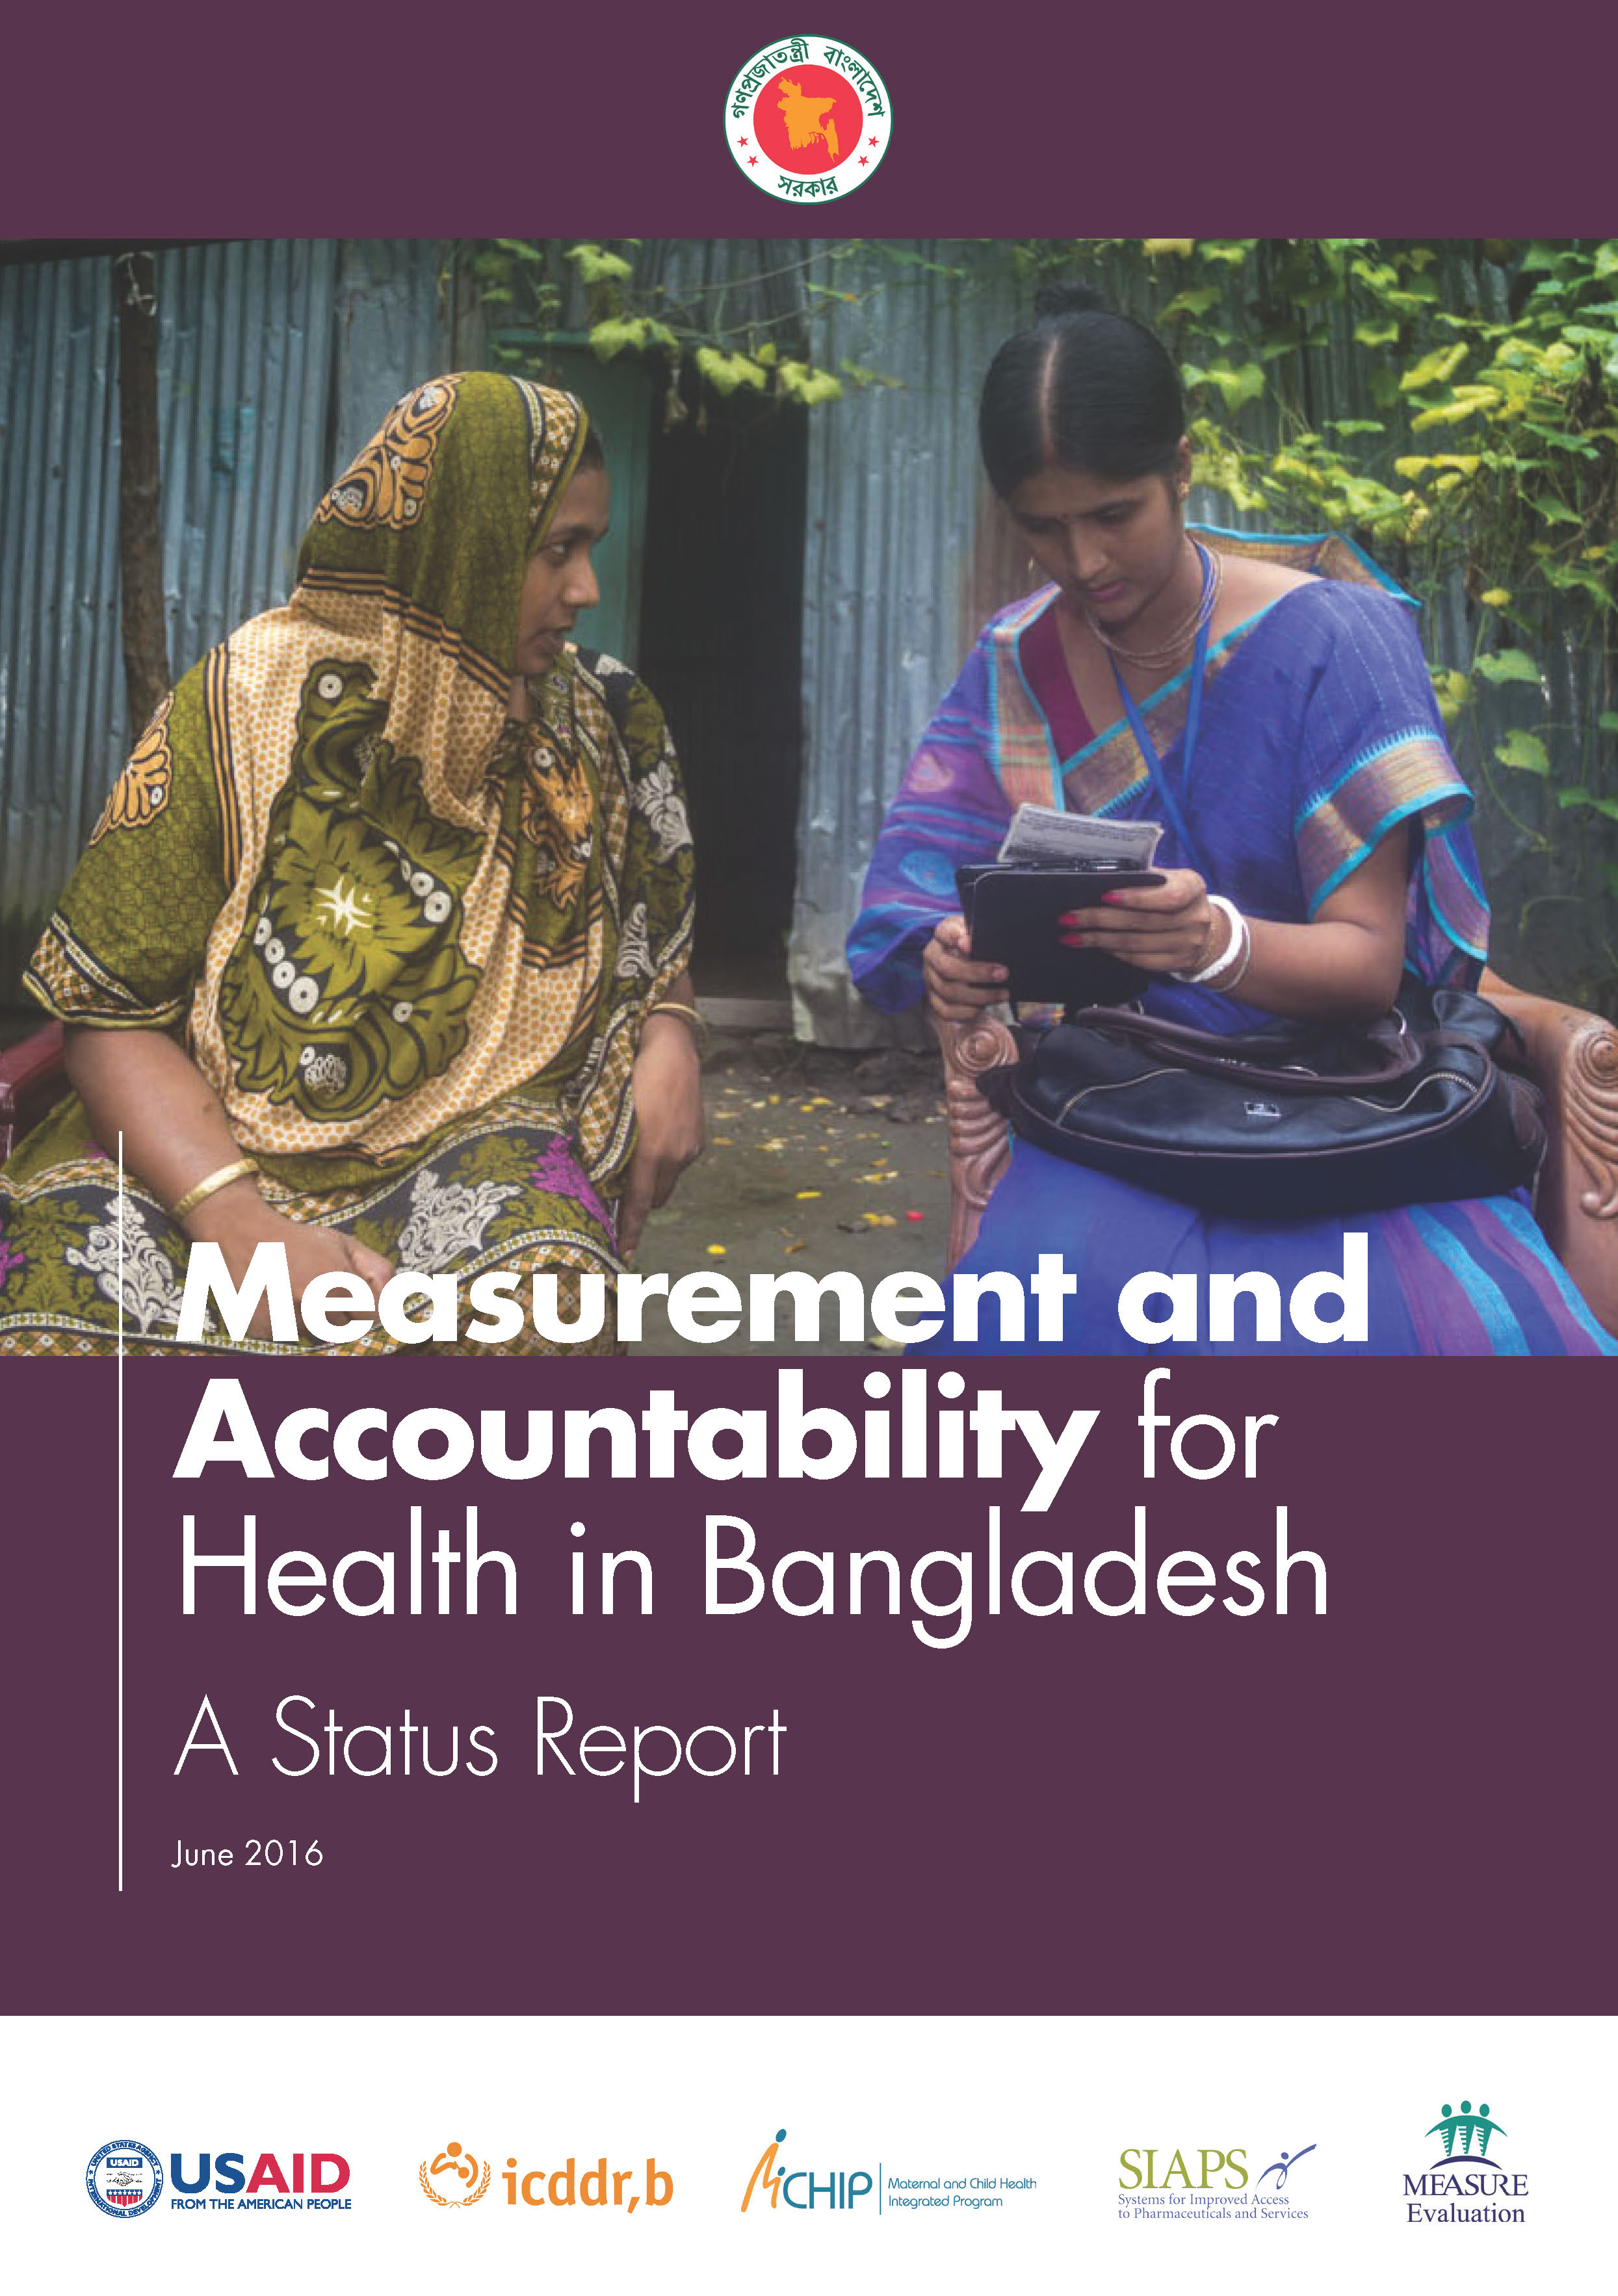 Measurement and Accountability for Health in Bangladesh: A Status Report